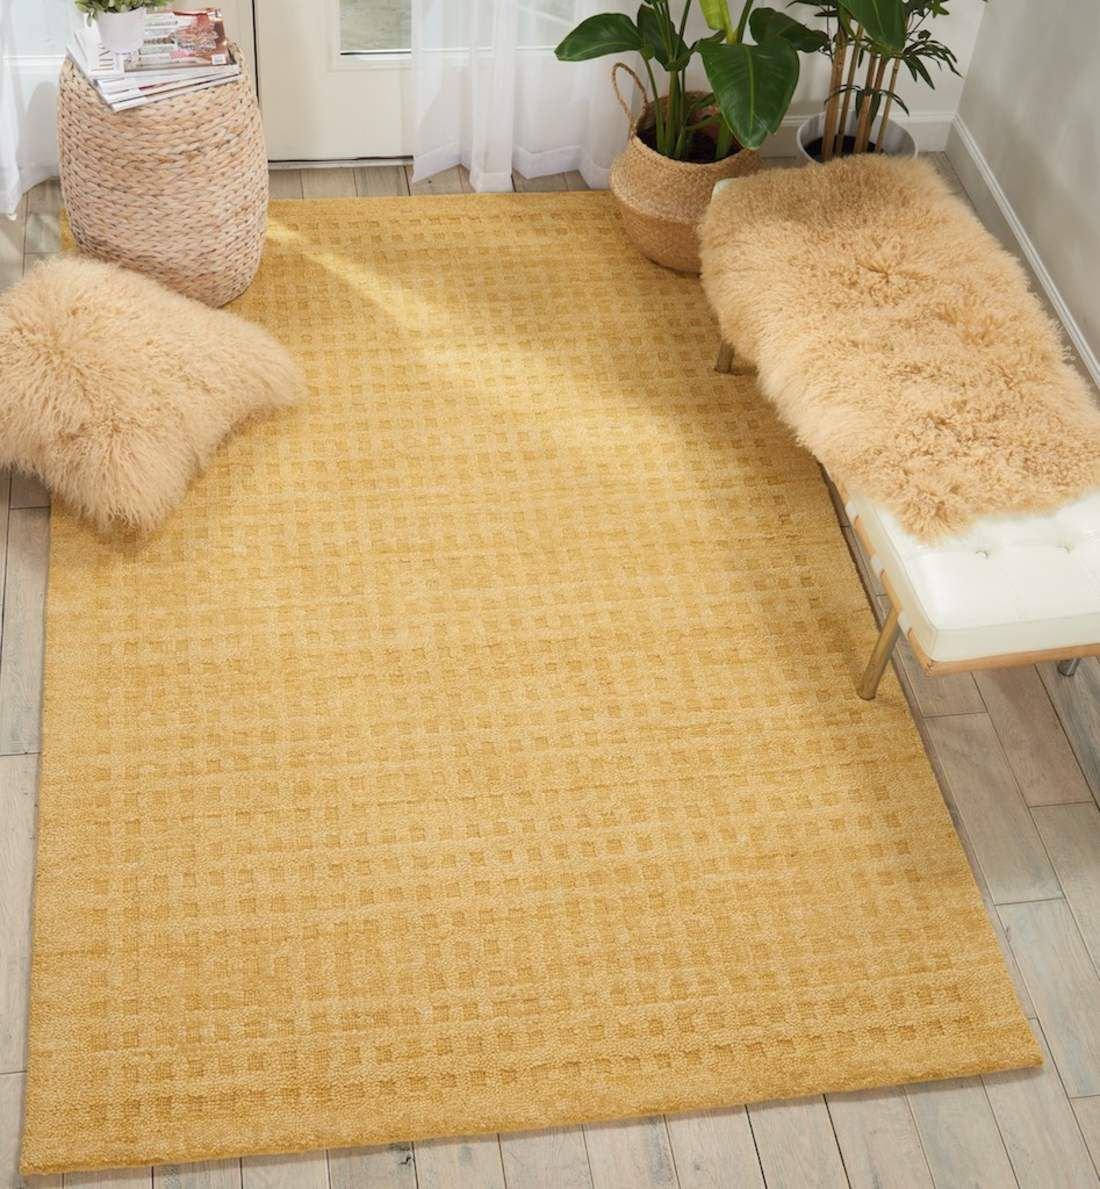 The Marana Rug Collection From Nourison Has Everything To Do With An Easy Style And Long Lasting Comfort With A Dense Loop Pile Of 100 Wool The Marana Rug Co